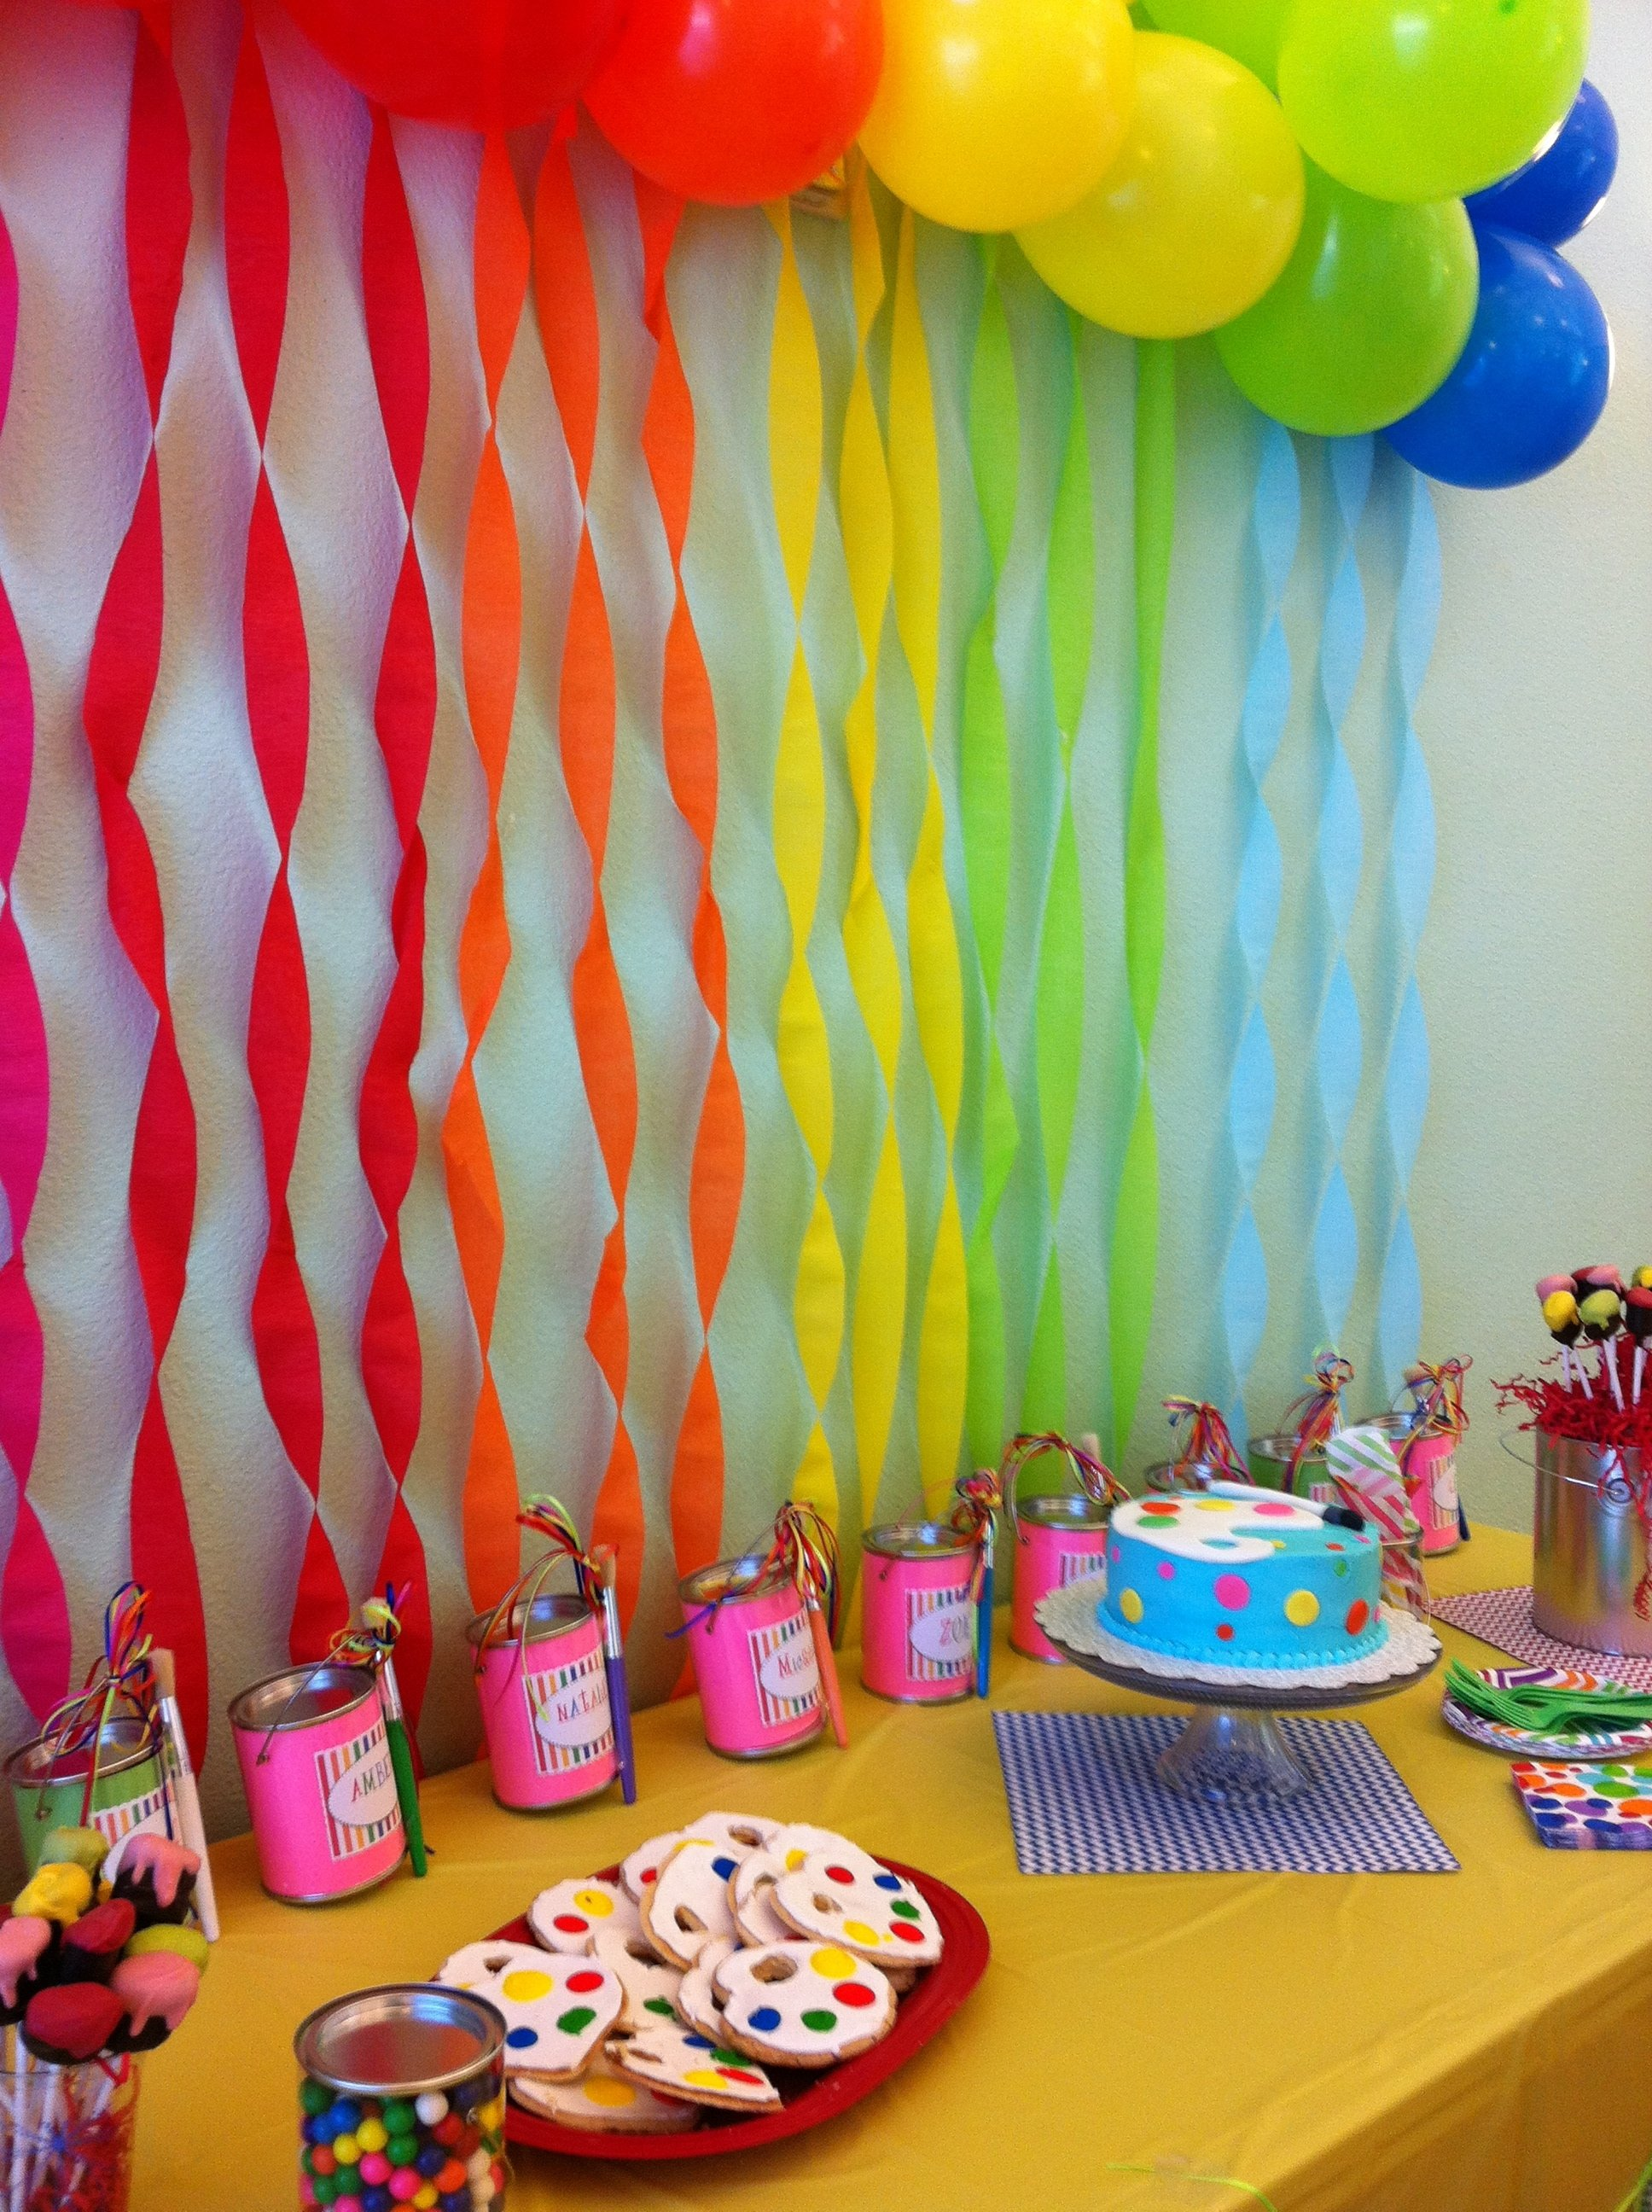 10 Lovely Birthday Party Ideas For 3 Yr Old Girl dazzling 3 year old birthday party ideas at home 8 girl art 6 2020